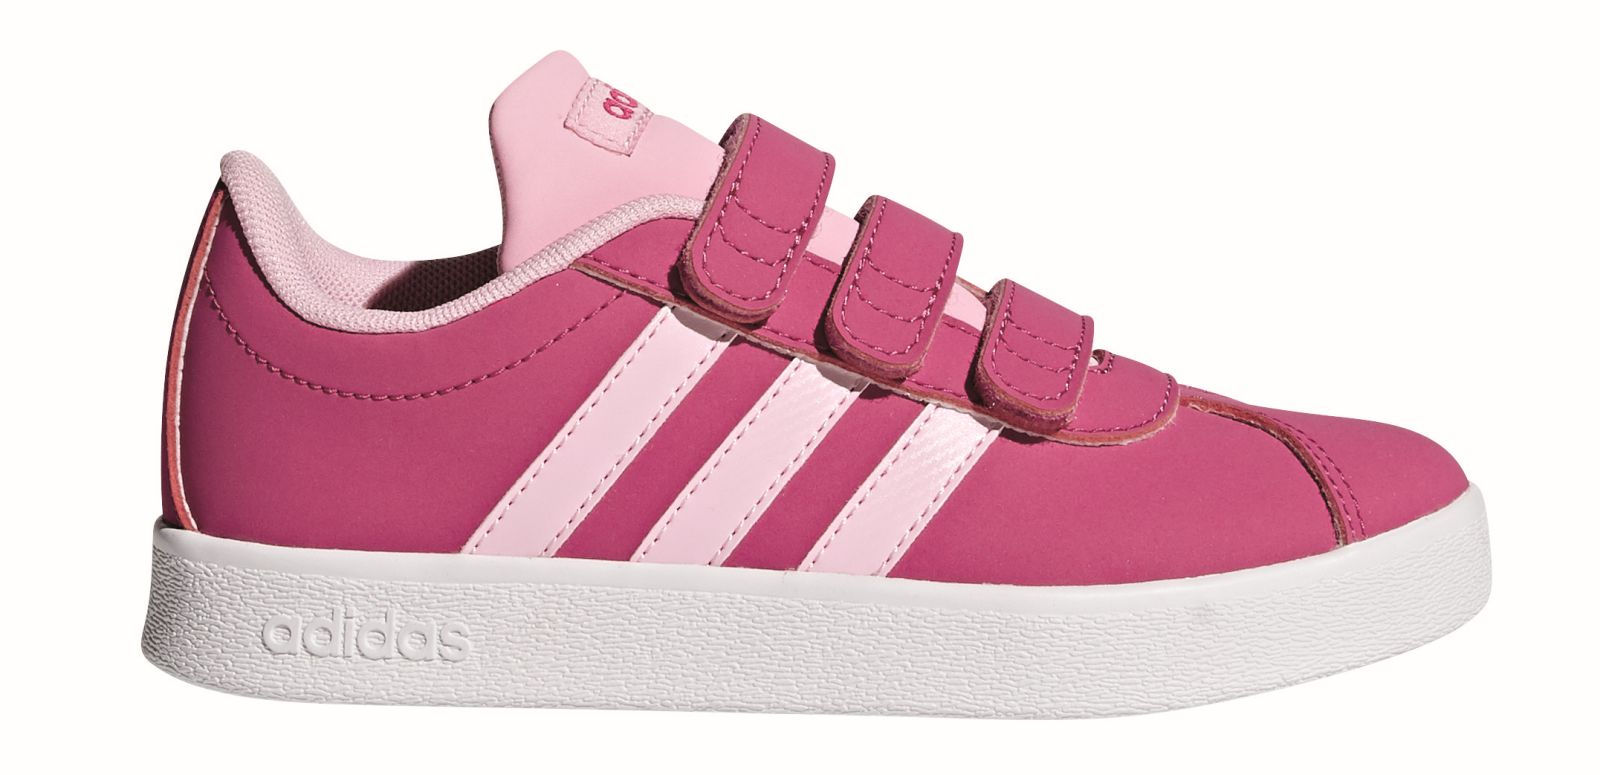 K Cmf C 0 Adidas Core 2 Enfants Chaussures Escarpins Baskets Vl kn0PwO